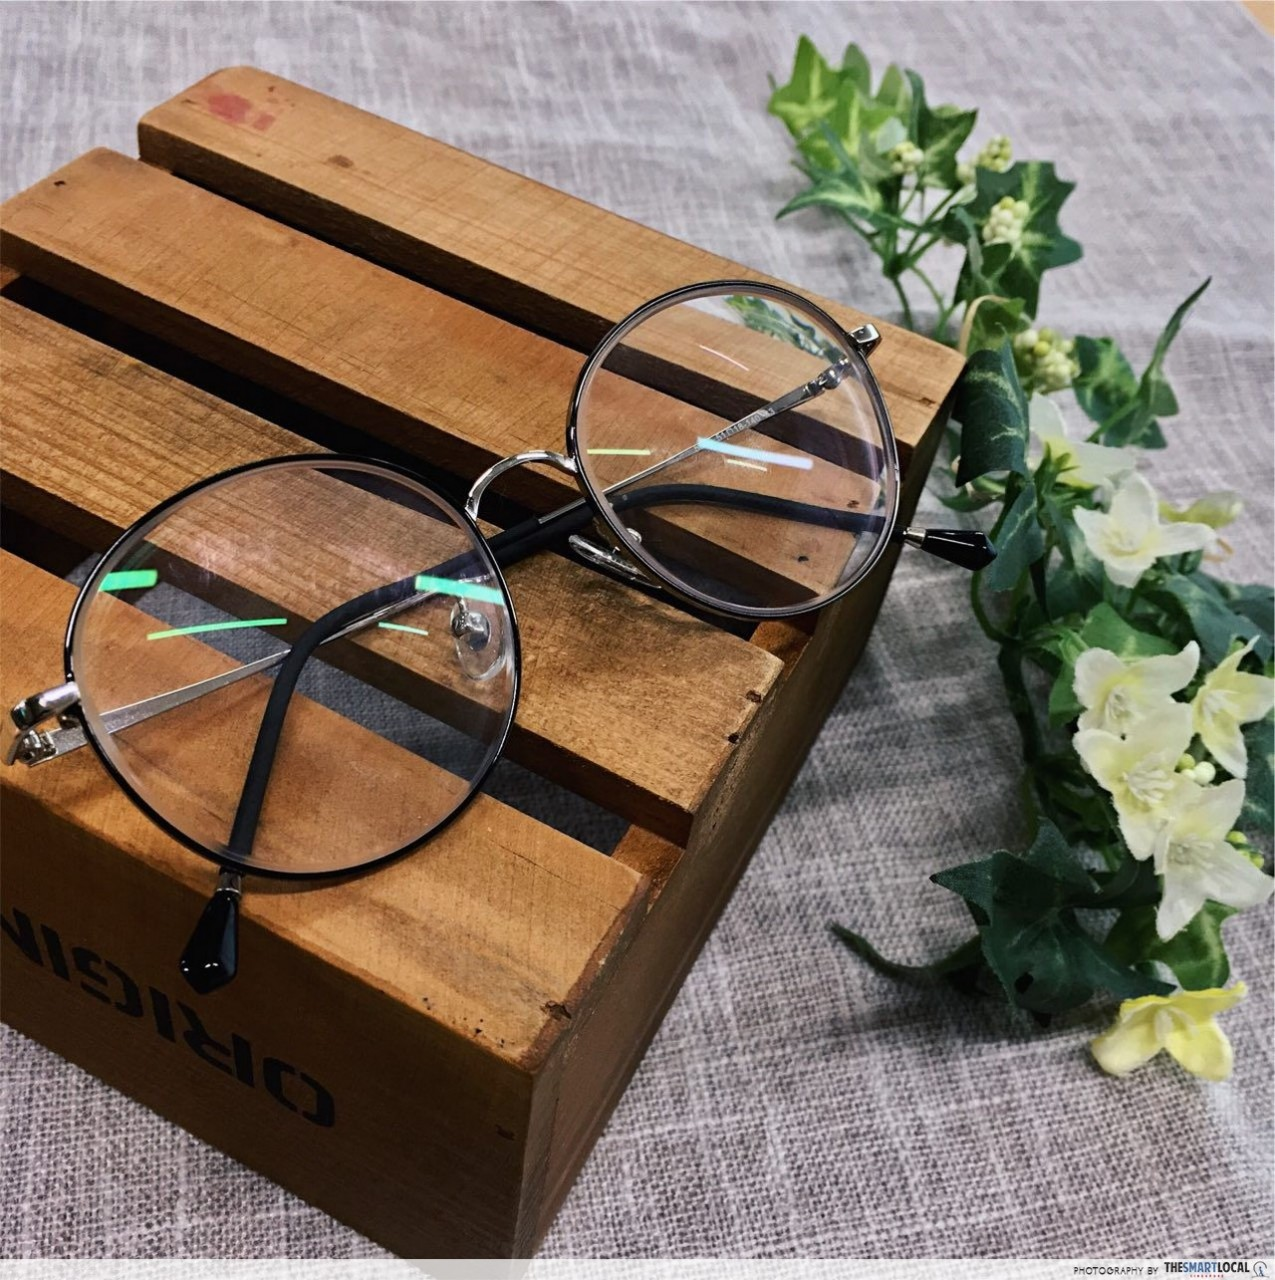 7 Spectacle Stores In Singapore With Affordable Frames & Lenses For ...